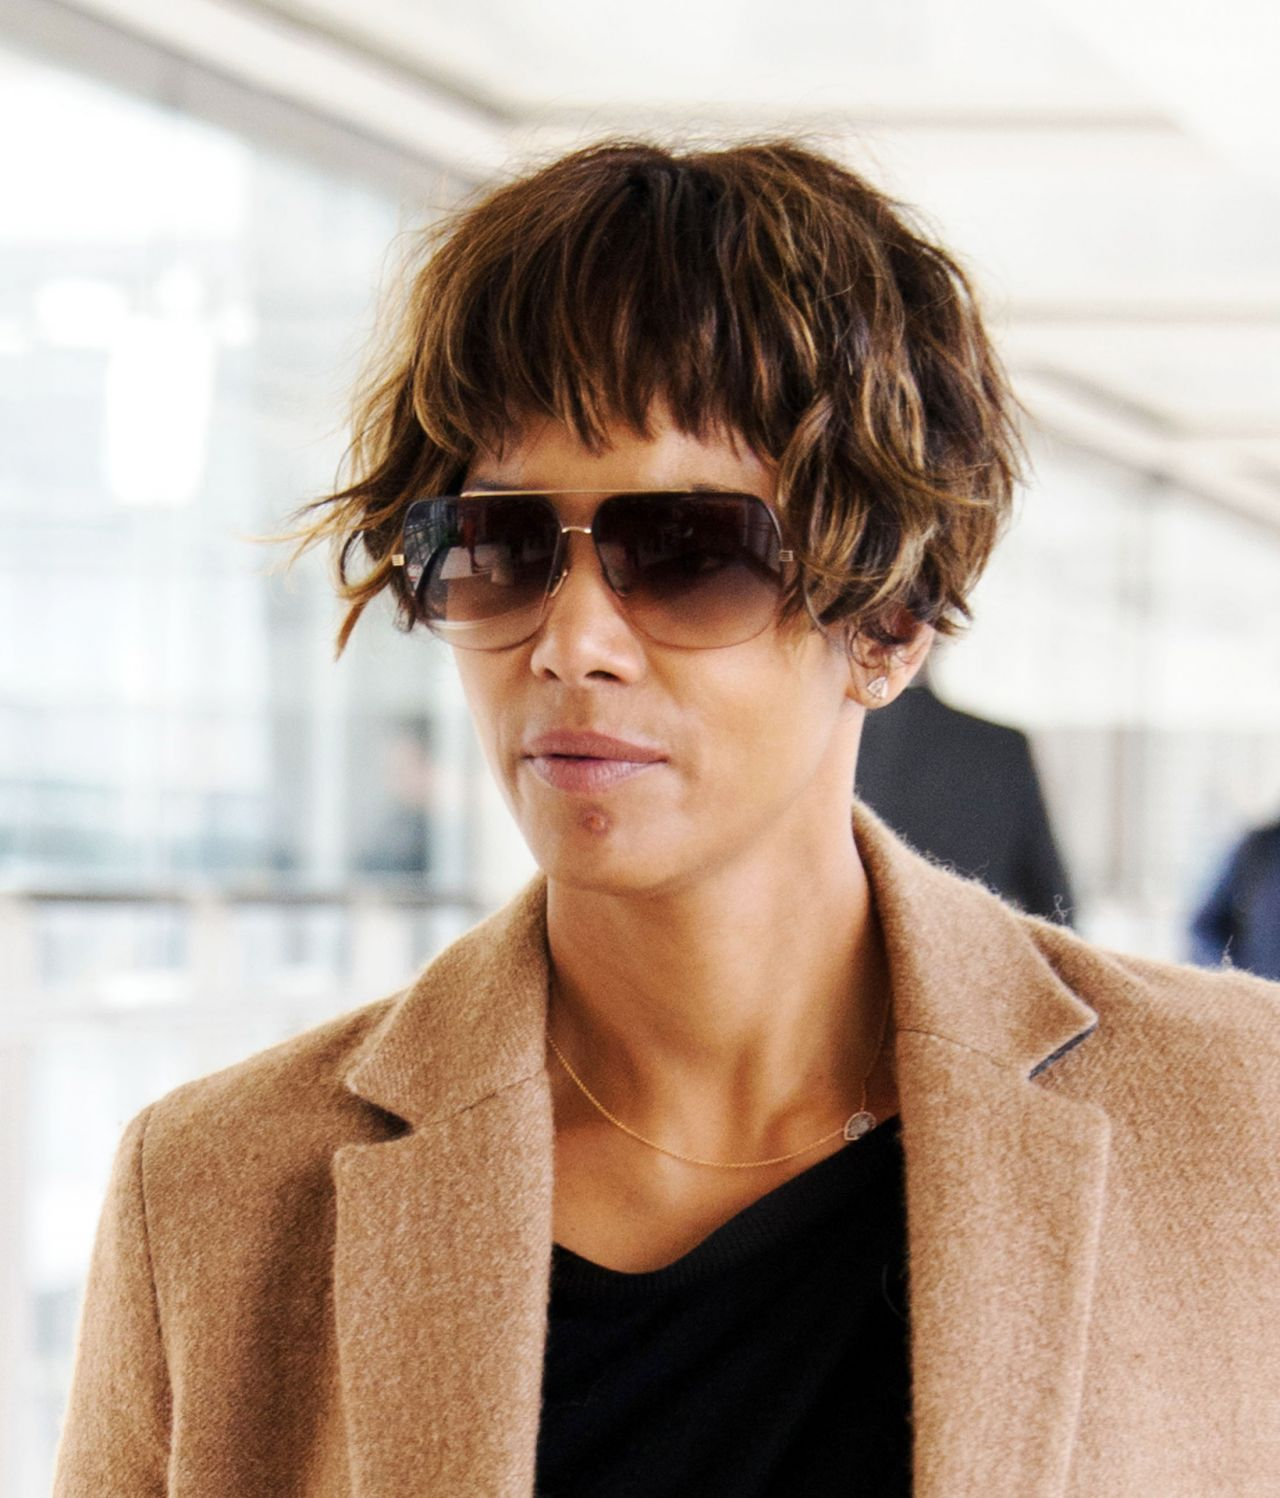 Halle Berry Arrives At Heathrow Airport In London Uk 4